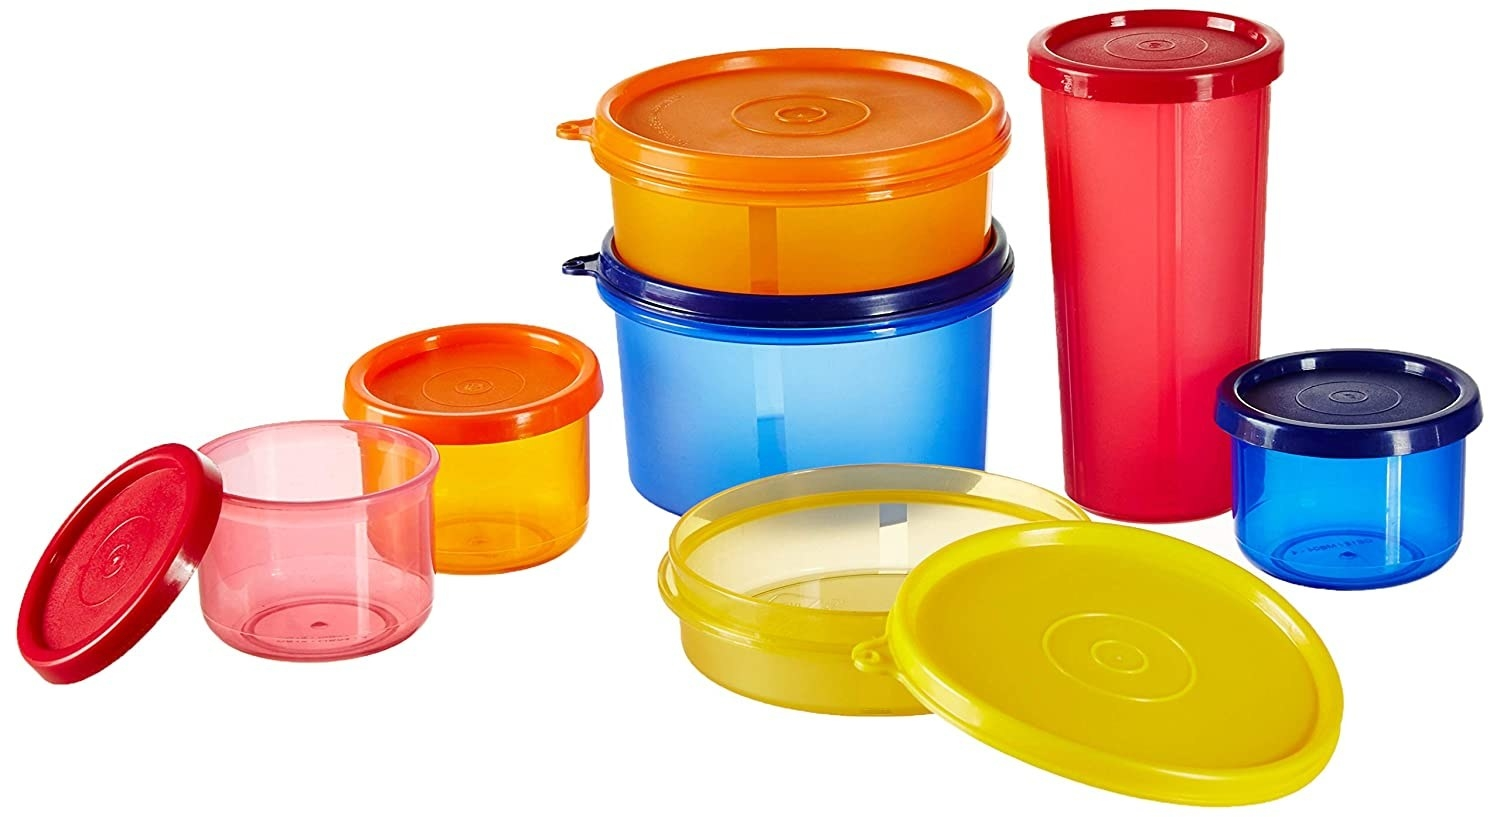 A set of 7 airtight food storage containers